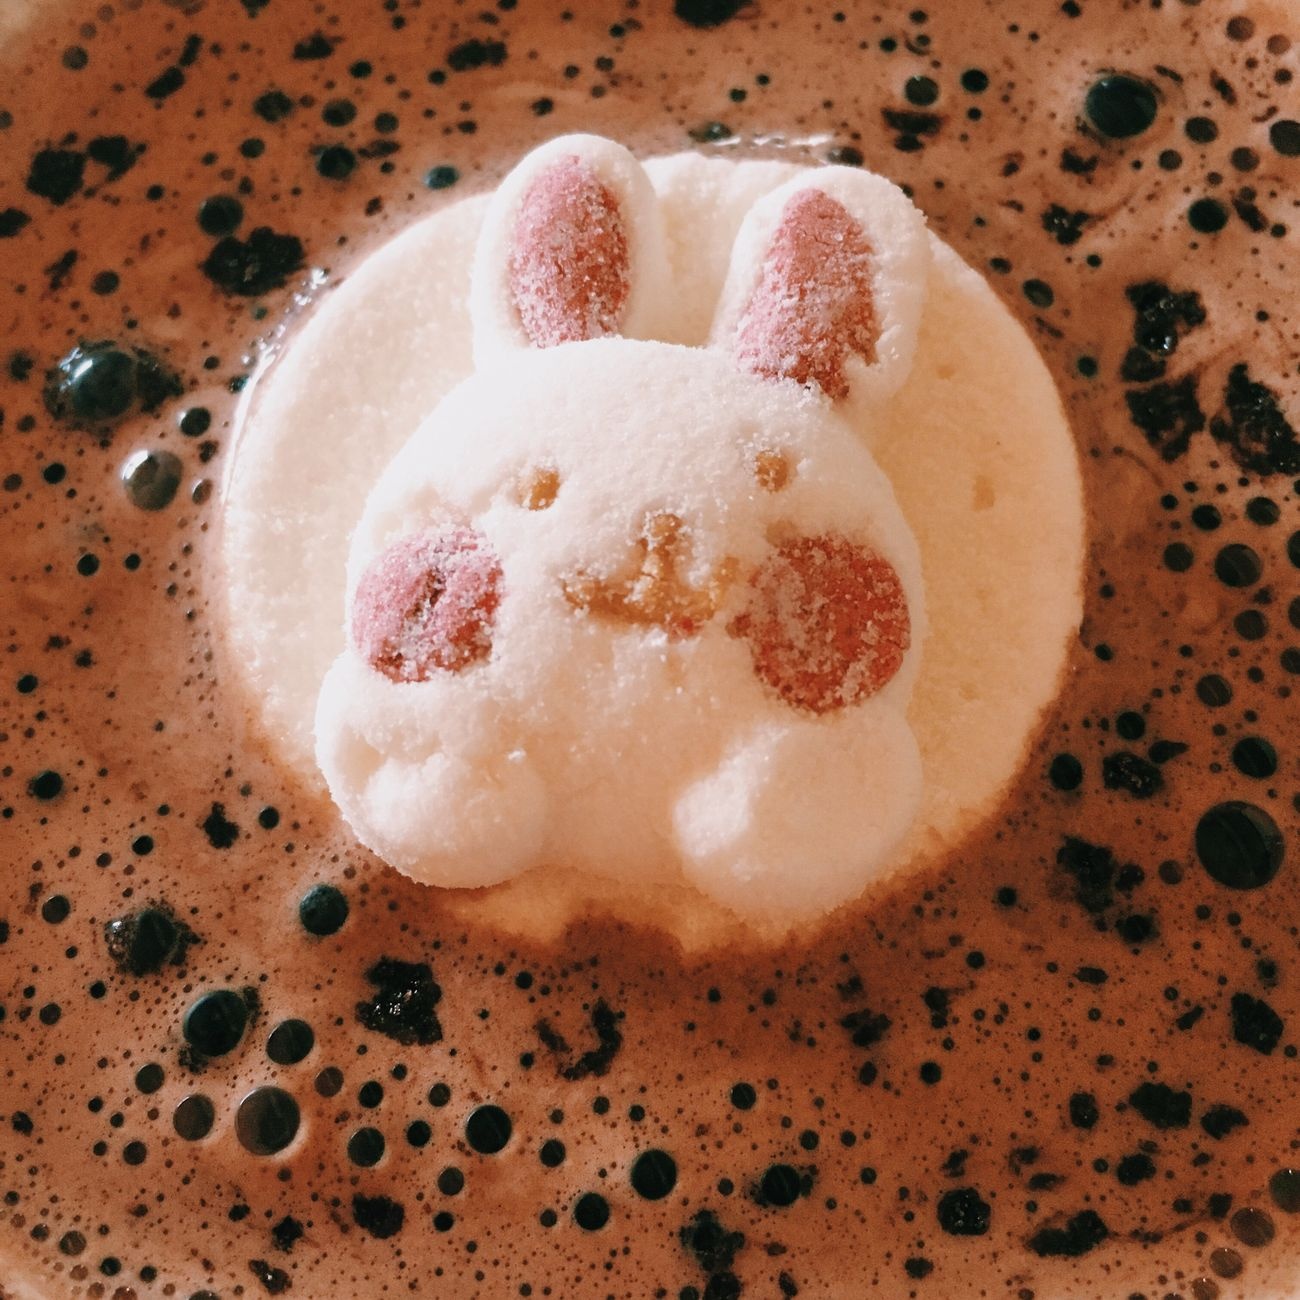 Cocoa Food And Drink Cocoa Powder Rabbit Rabbits Rabbit ❤️ Sweet Yummy